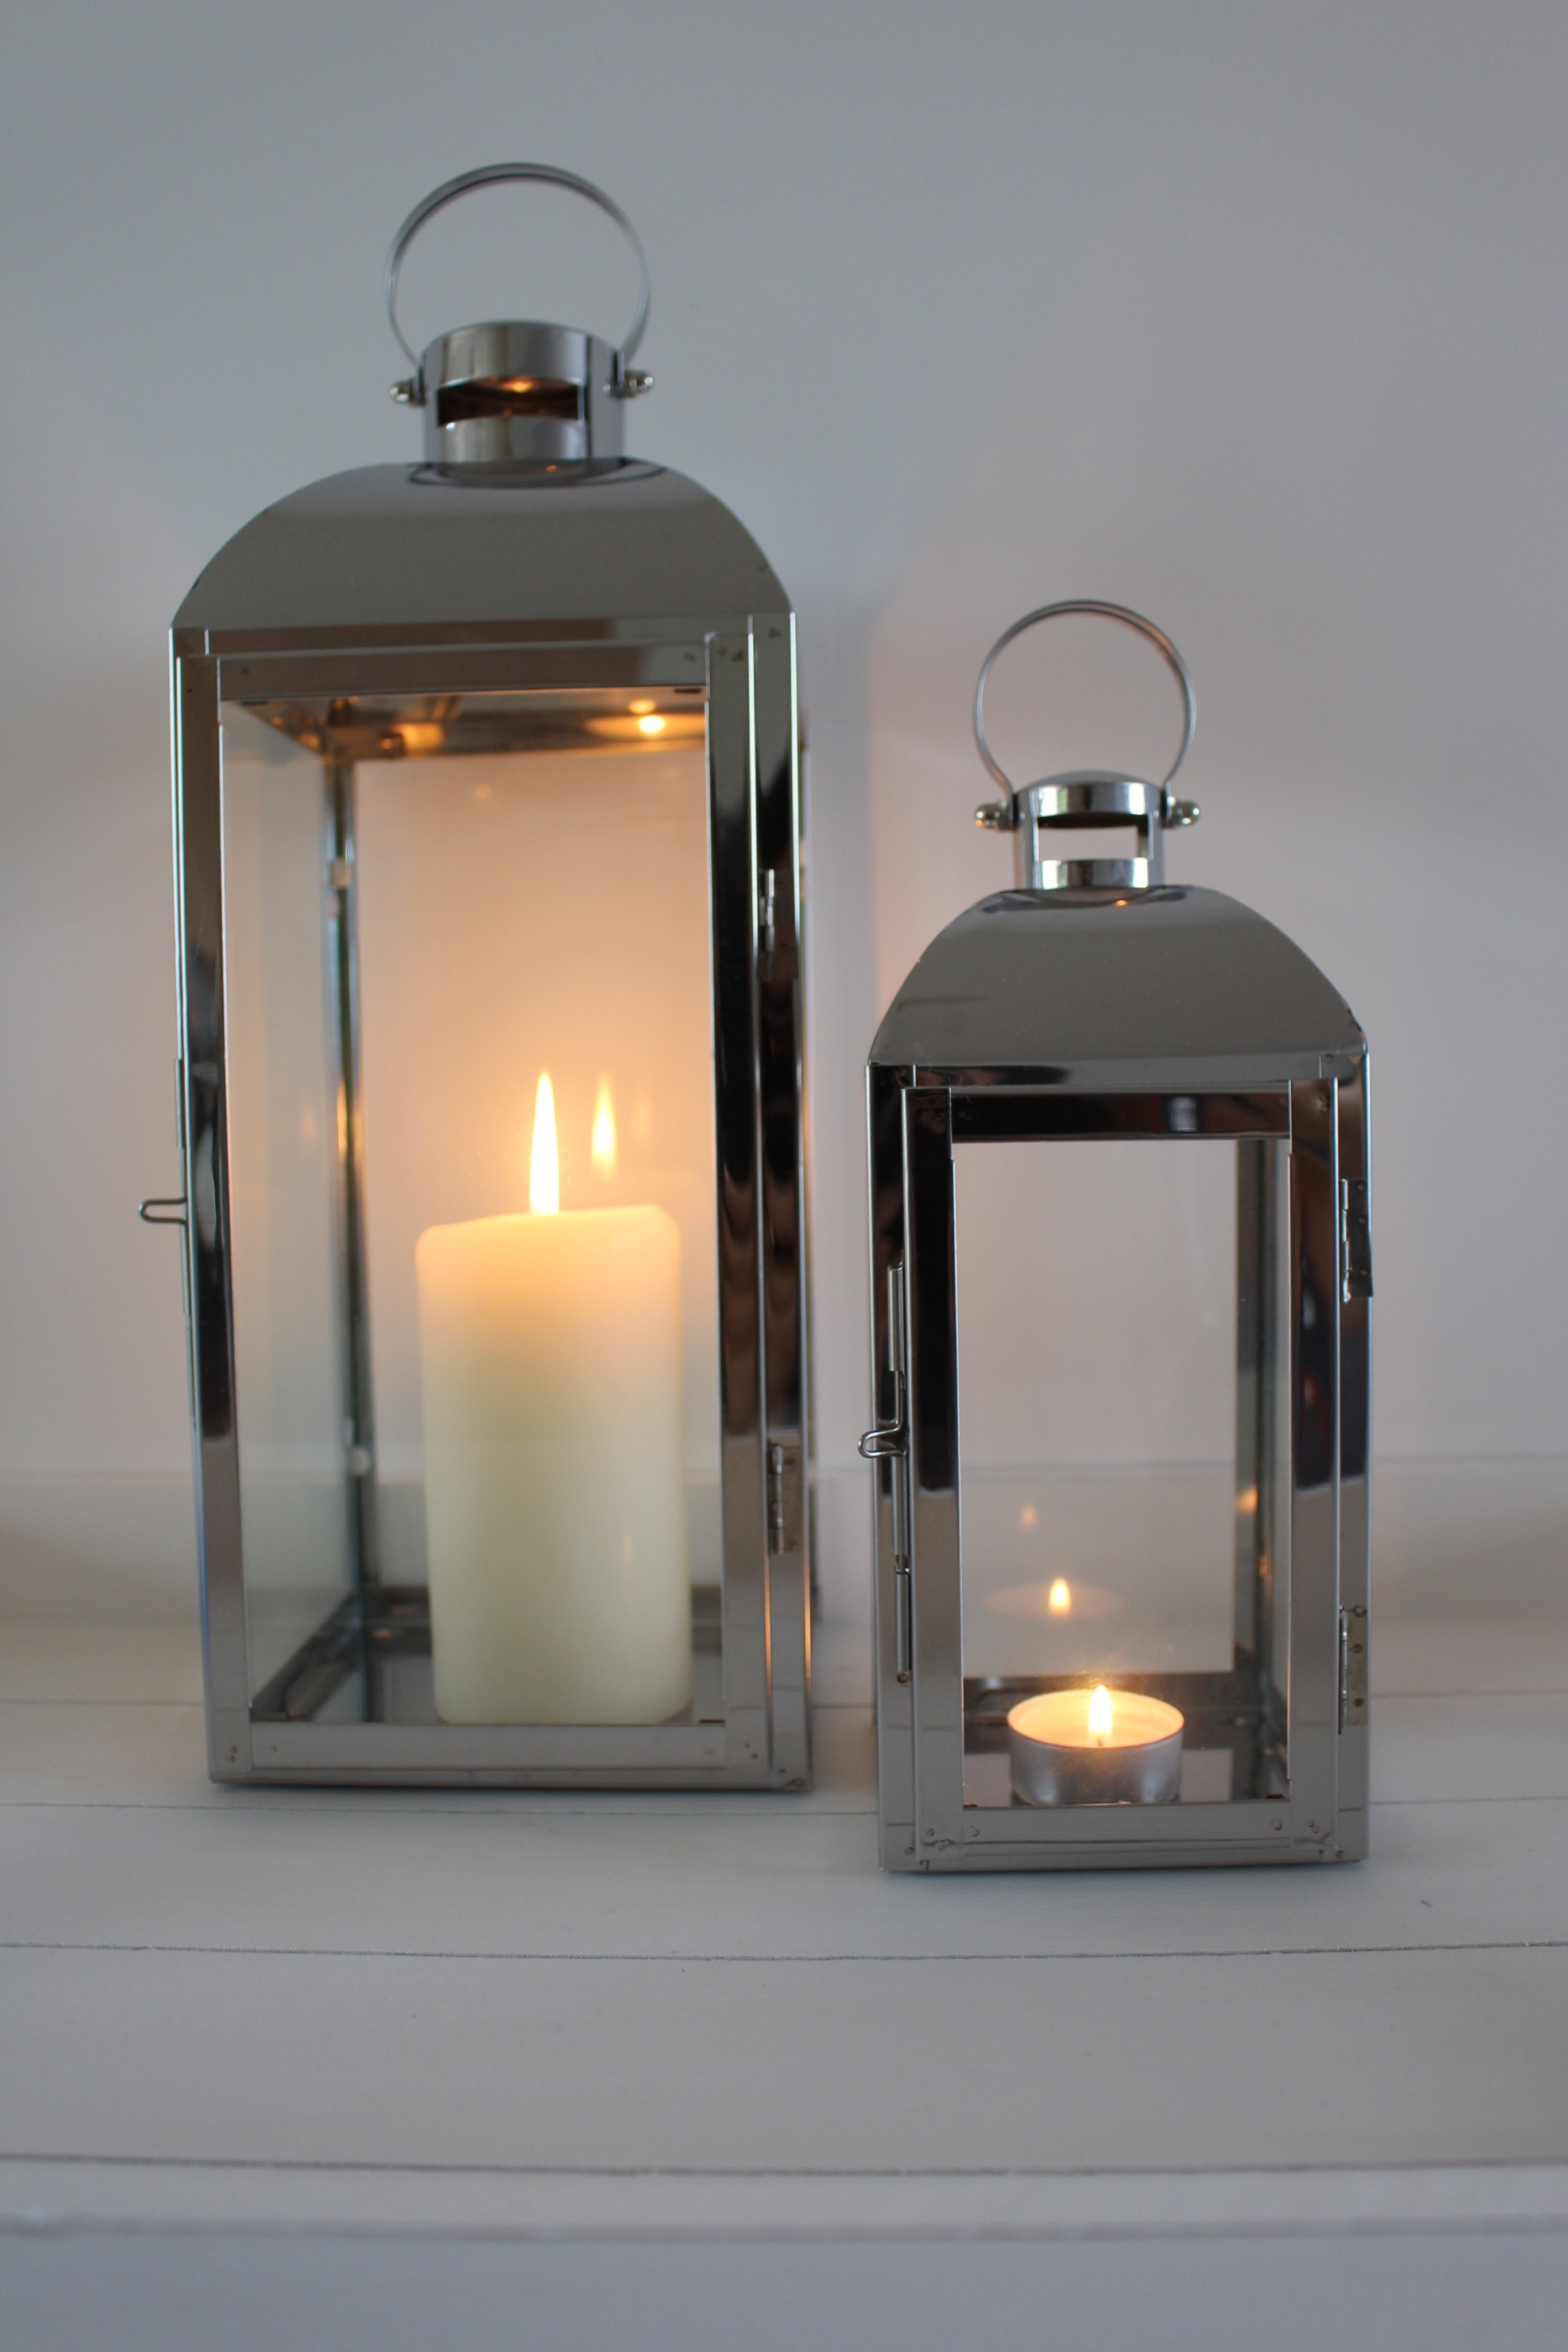 Outdoor Hurricane Lanterns With Regard To Well Known Large Outdoor Hurricane Lantern – Outdoor Ideas (View 12 of 20)